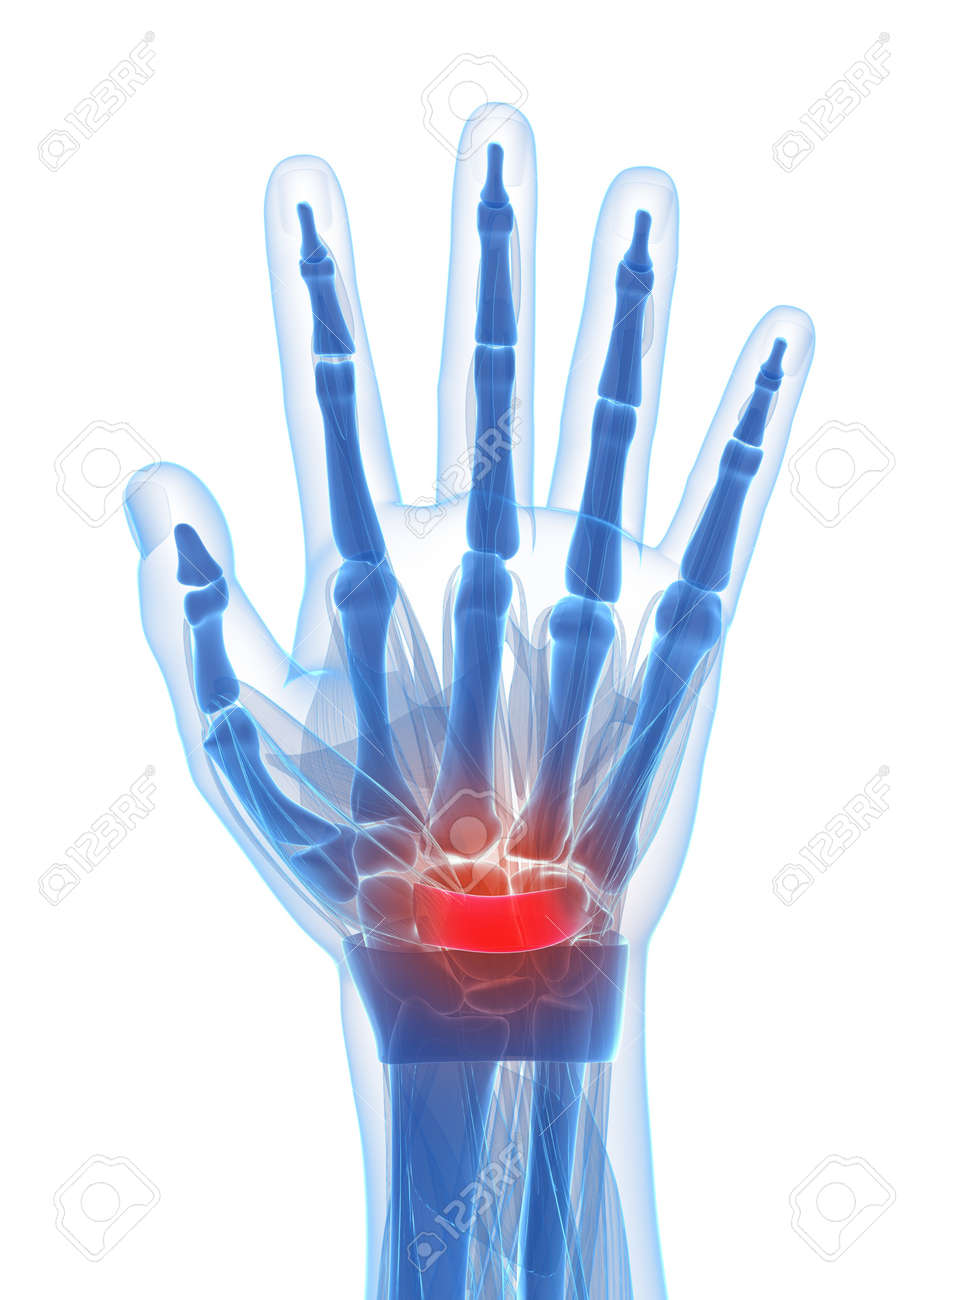 3d Rendered Illustration Of The Carpal Tunnel Syndrome Stock Photo ...